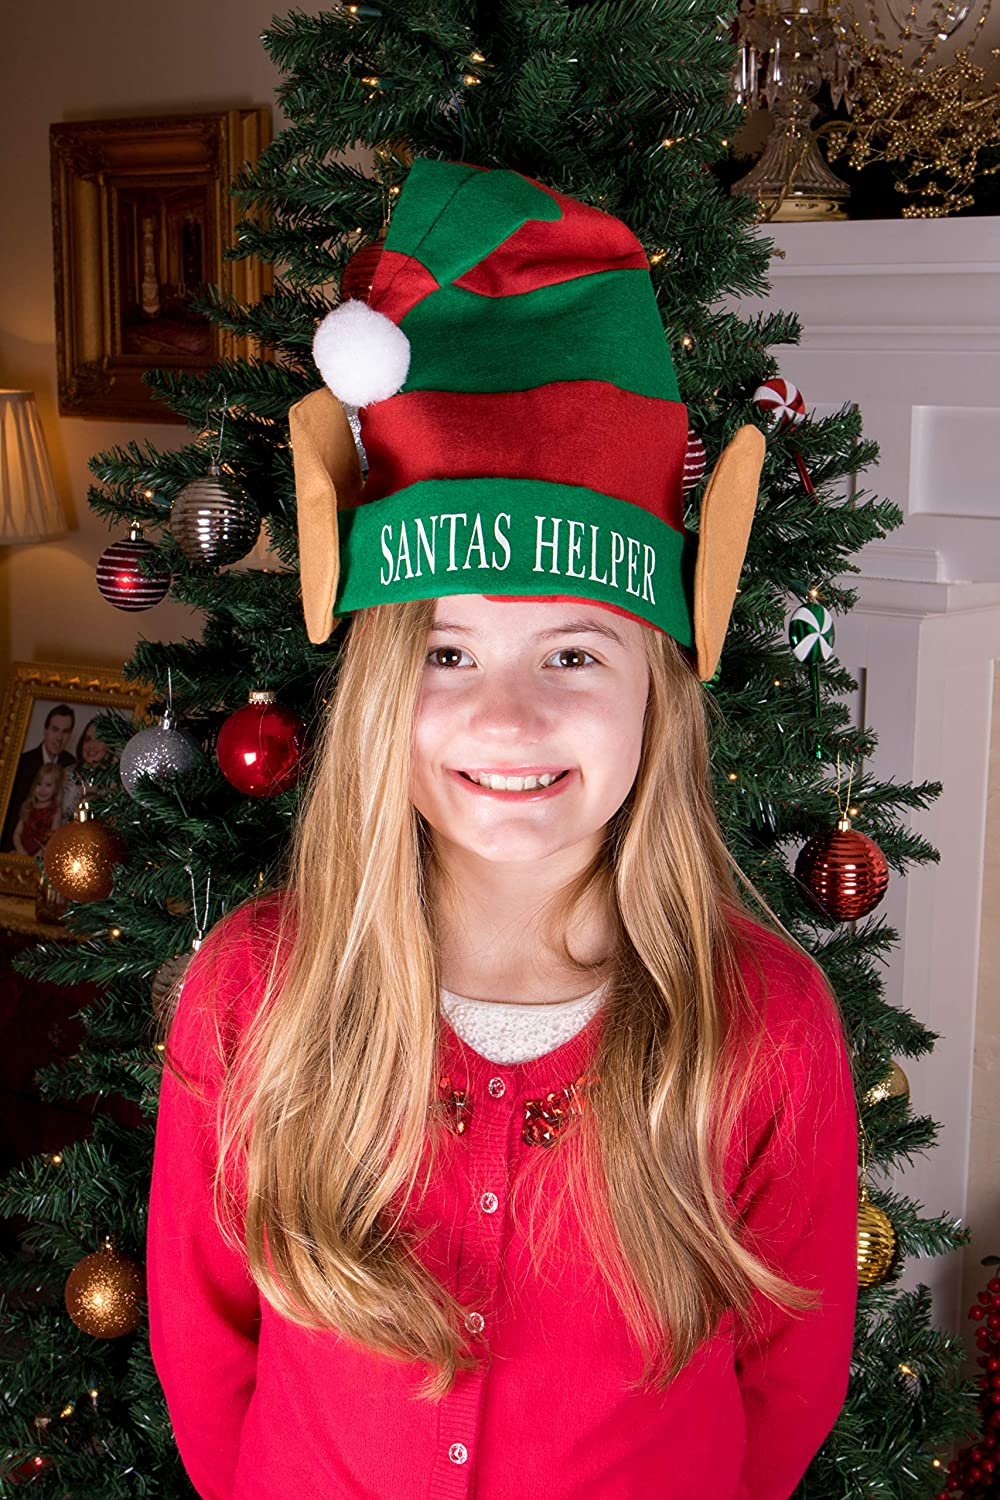 Measures 11.5 x 17 Red and White Striped Santas Lil Elf Hat with White Pom Pom and Elf Ears One Size Fits Most Clever Creations Christmas Elf Hat